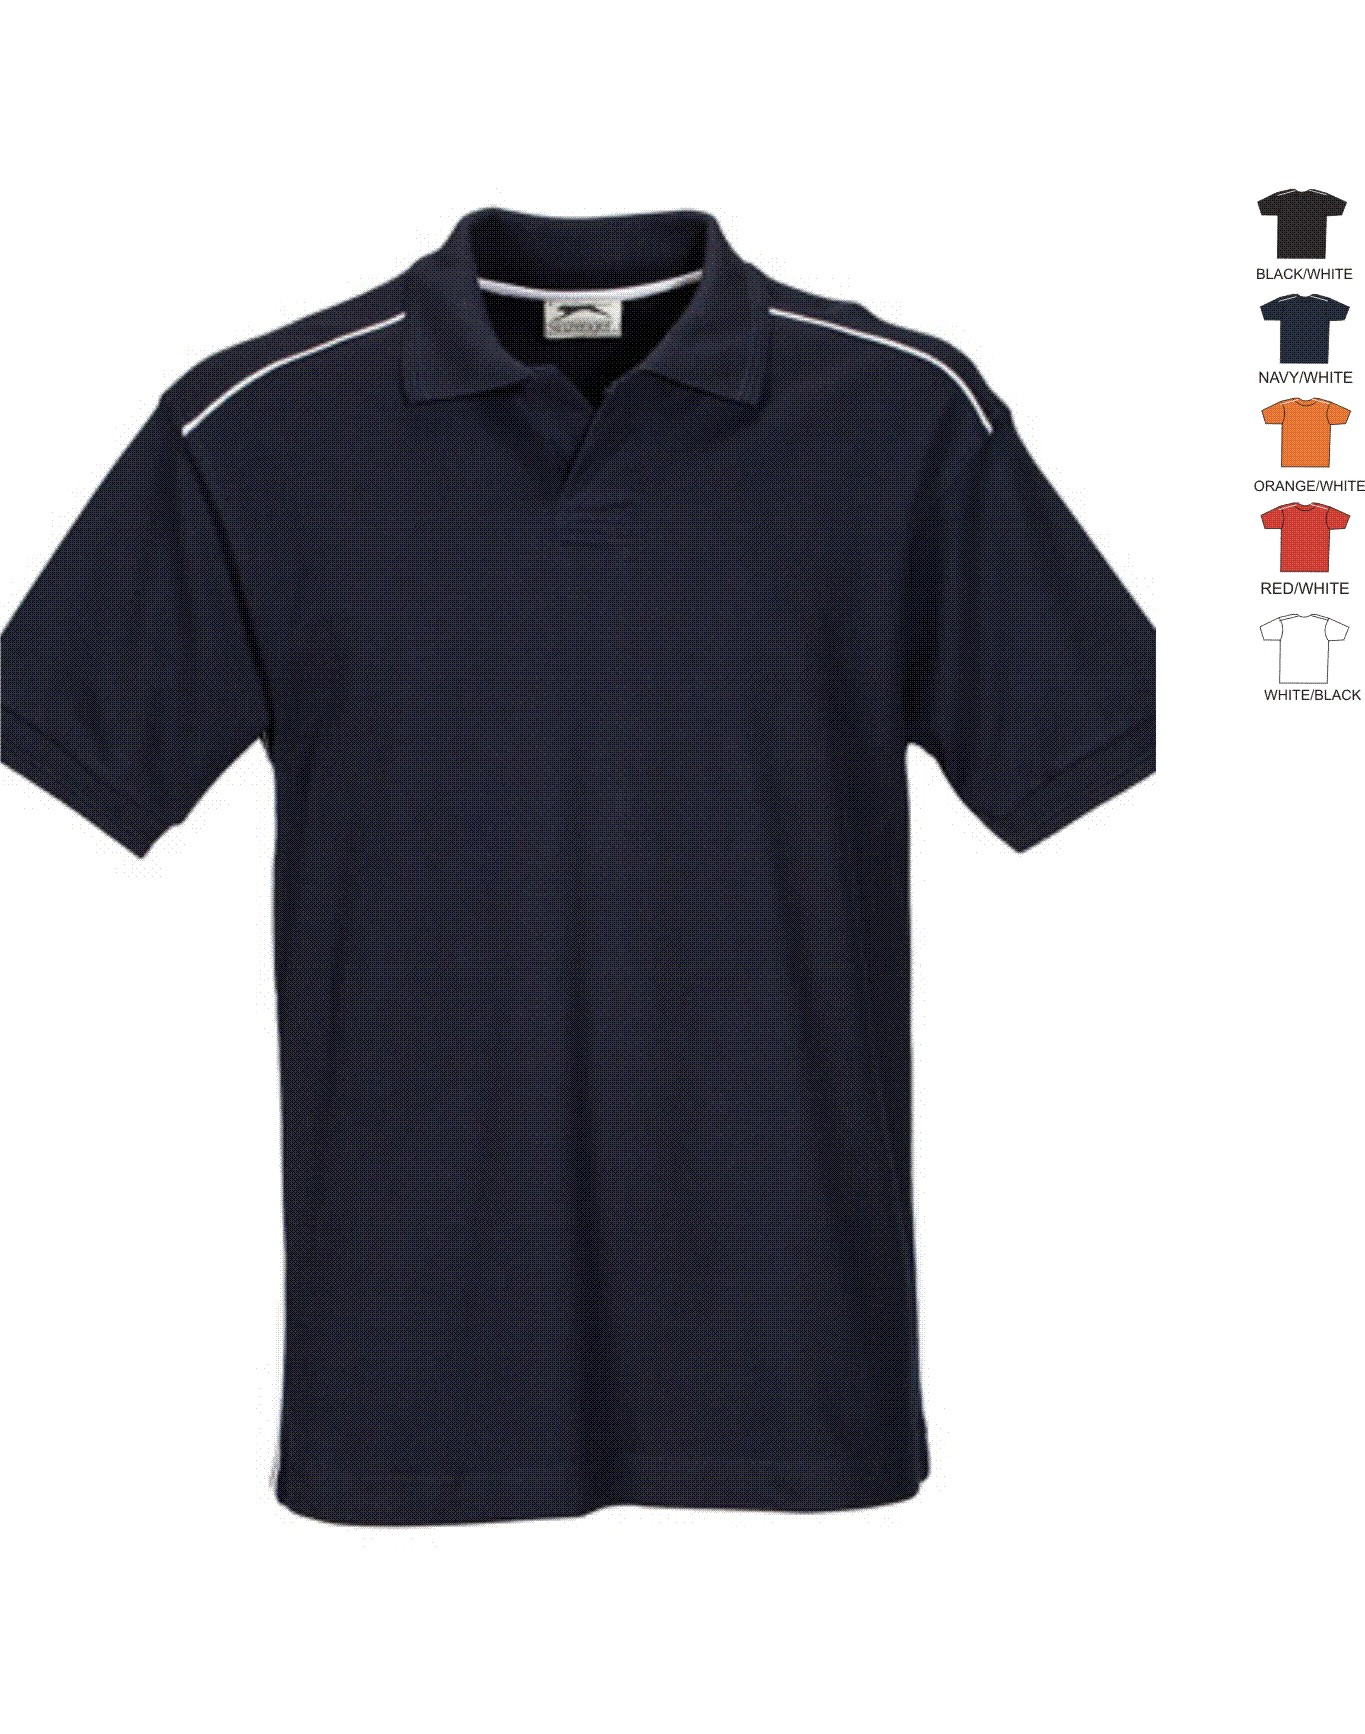 Slazenger SL074 Backhand Polo